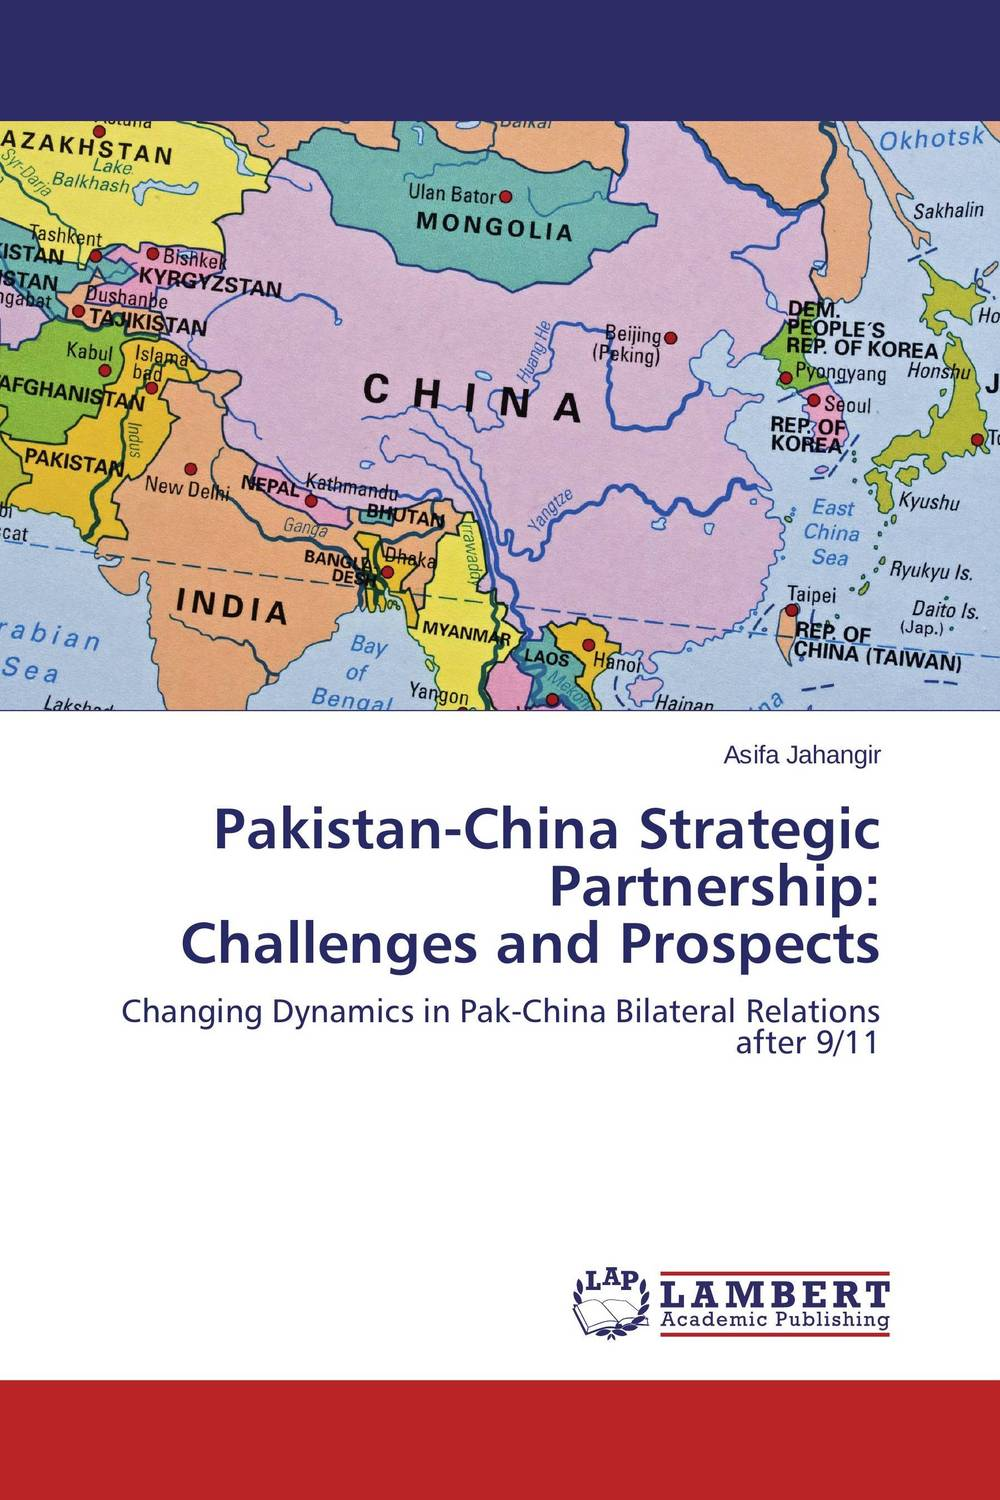 Pakistan-China Strategic Partnership: Challenges and Prospects uzma rehman sufi shrines and identity construction in pakistan